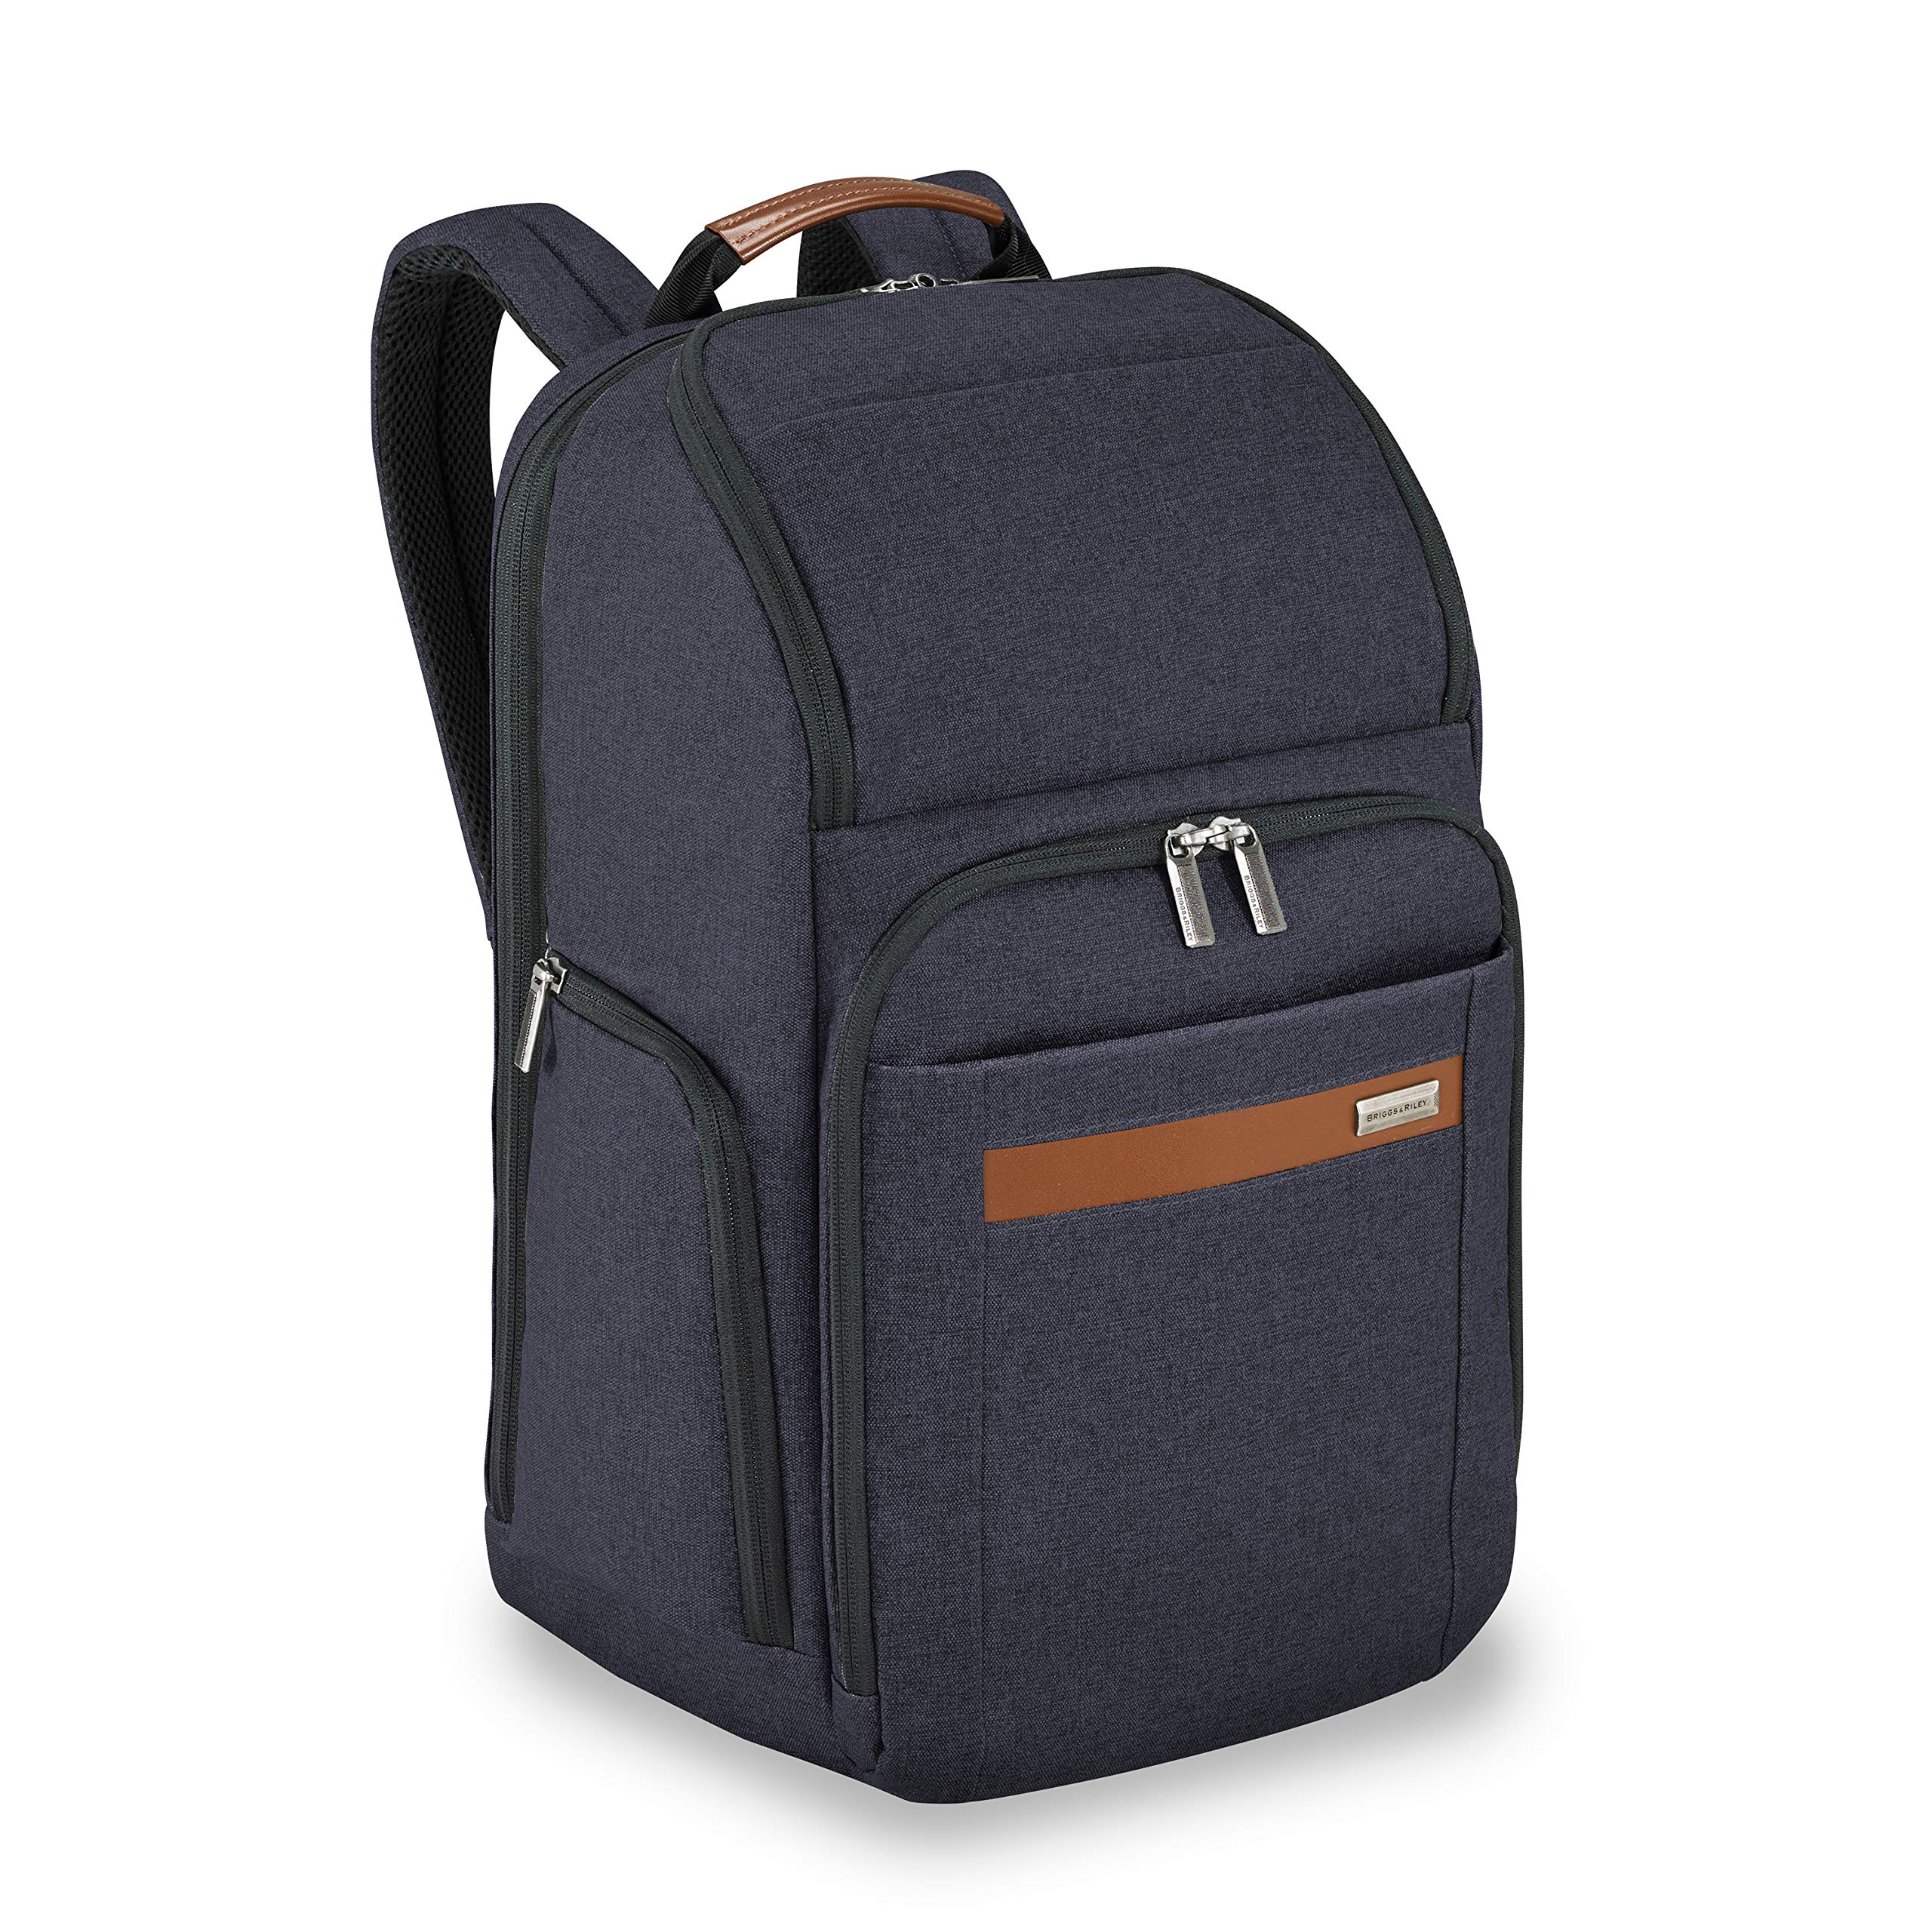 Briggs & Riley Kinzie Street Large Backpack, Navy, One Size